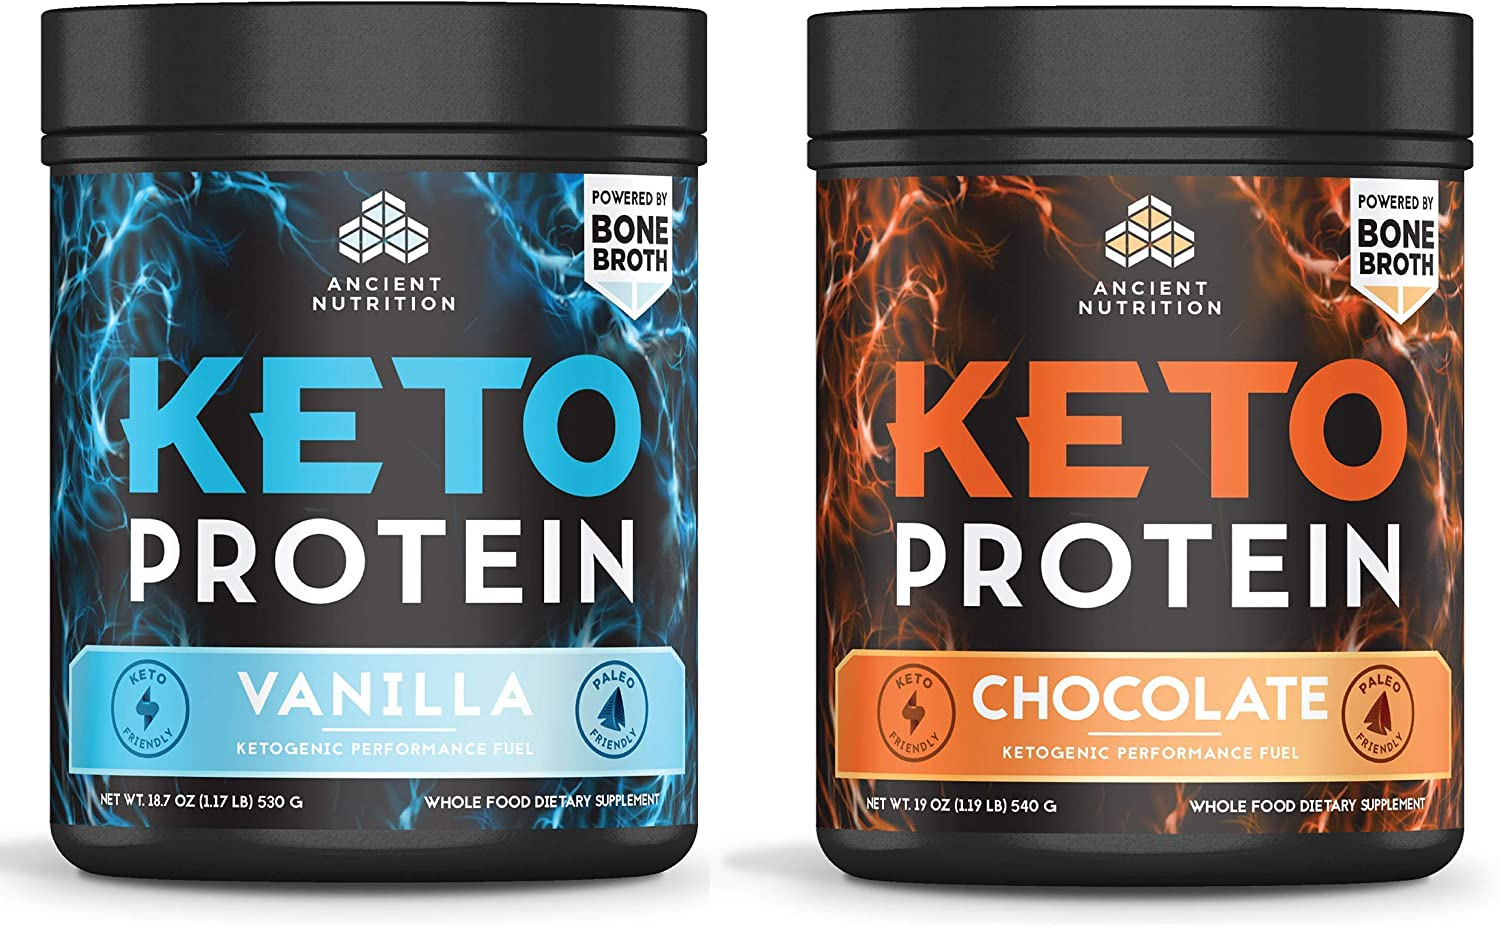 Ancient Nutrition Keto Protein Bundle Chocolate KetoPROTEIN - Super Max 50% OFF popular specialty store +